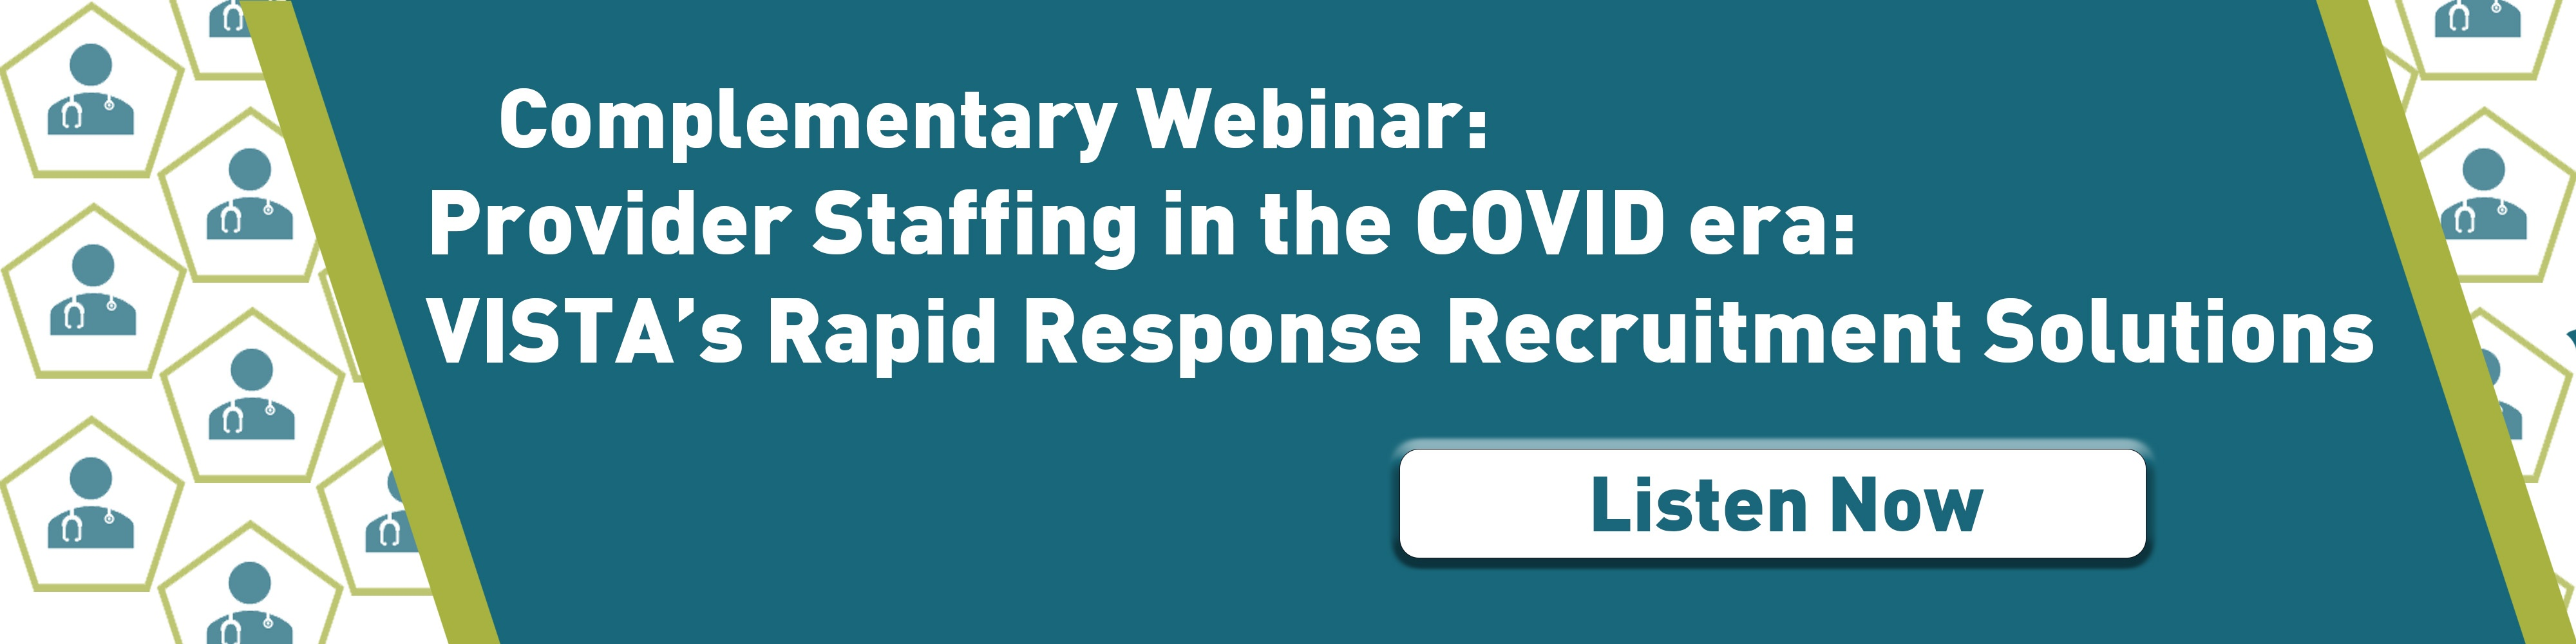 Complementary Webinar: Provider Staffing in the COVID era